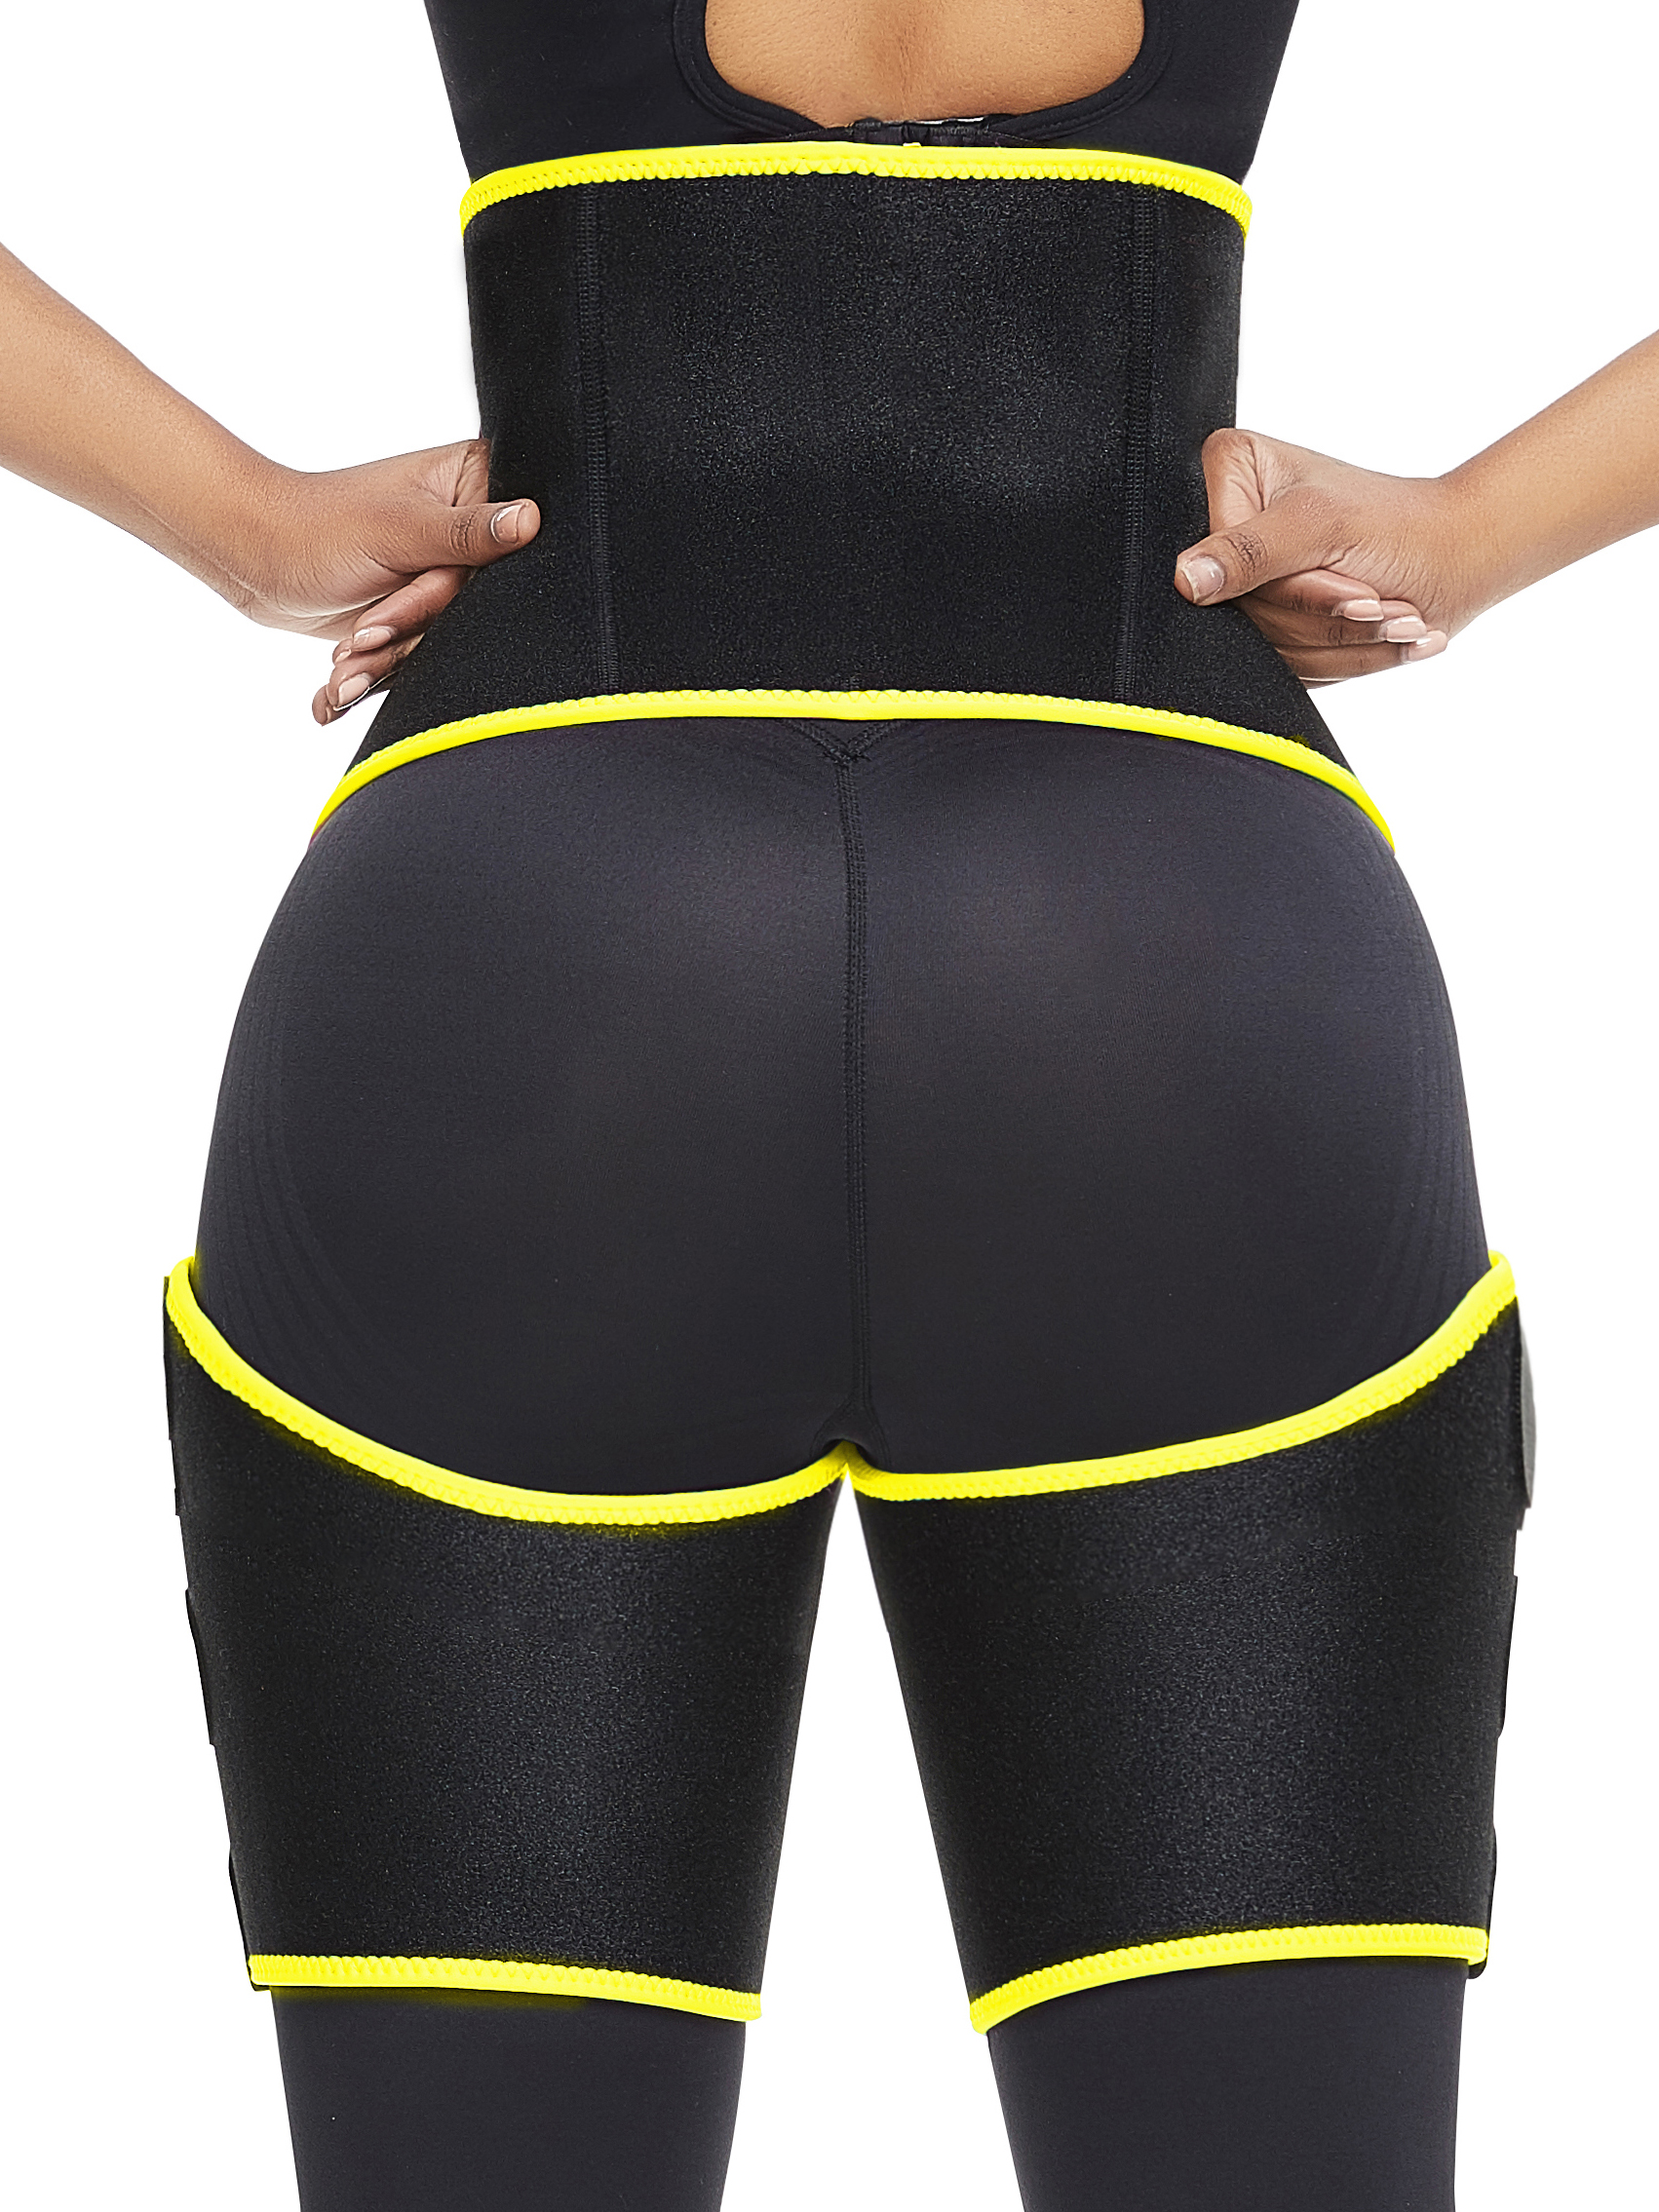 //cdn.affectcloud.com/feelingirldress/upload/imgs/Shapewear/Sweat_Waist_Trainer/MT190180-YE1/MT190180-YE1-202006095edf278f29382.jpg